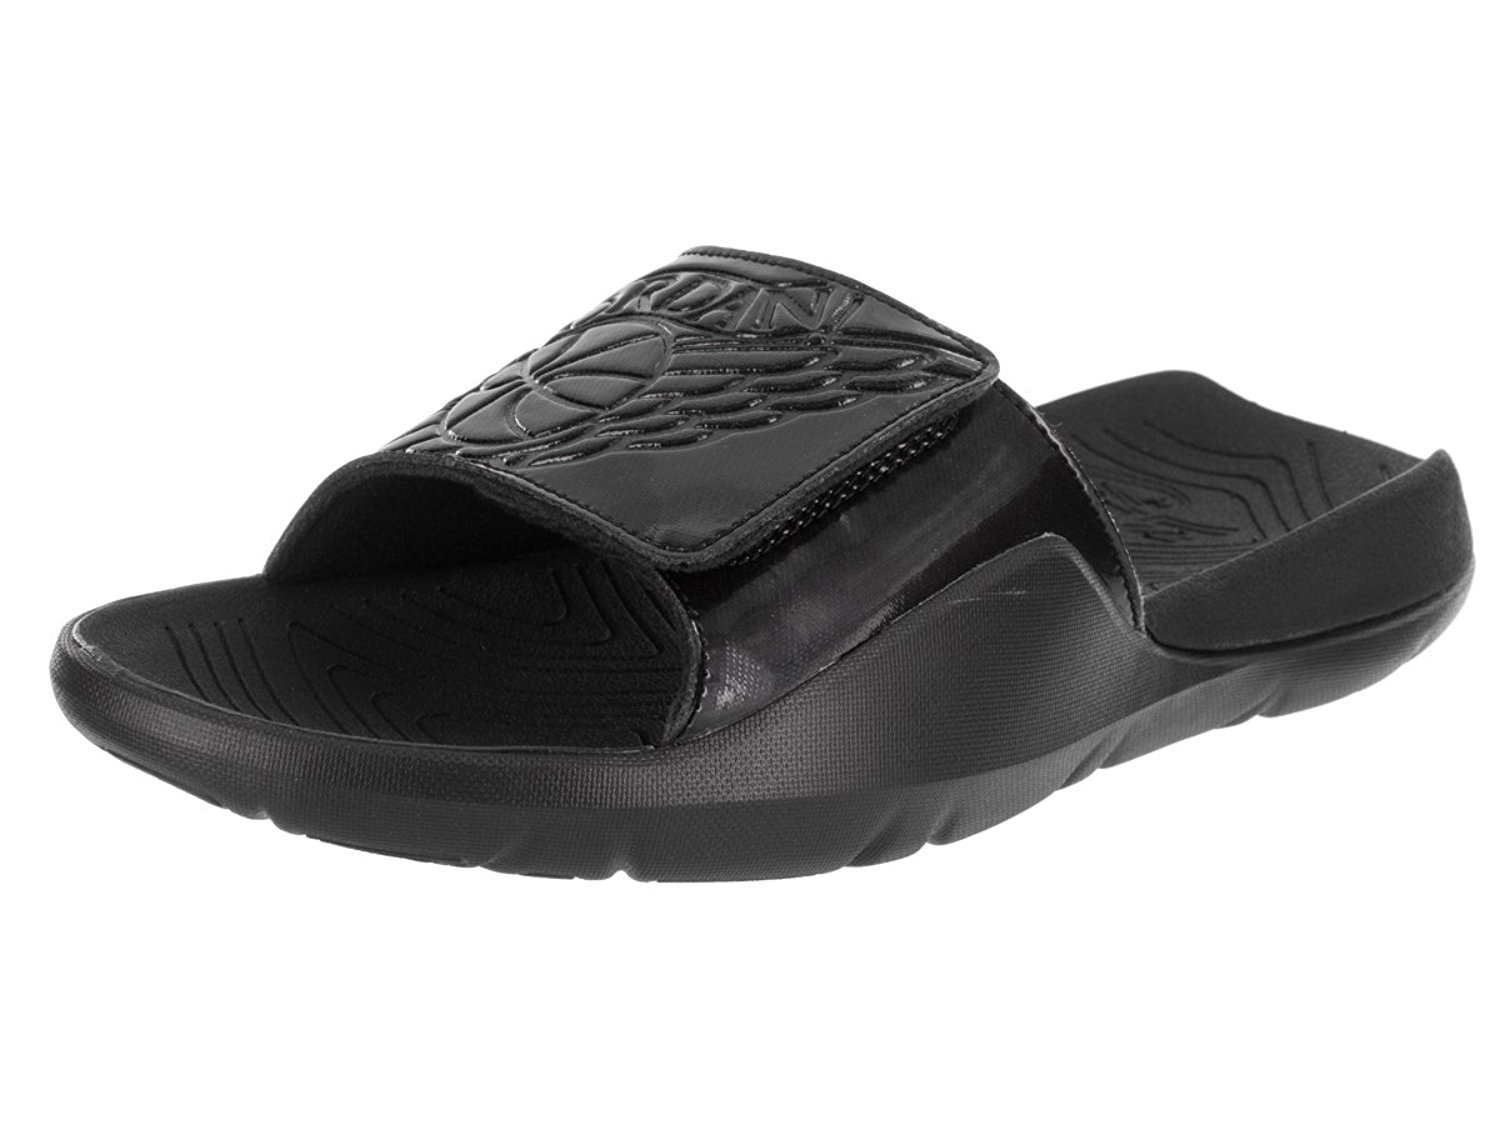 76d34541585ffe Get Quotations · Jordan AA2517-010  Hydro 7 Mens Black Retro Premium Slides  Sandals (13 D